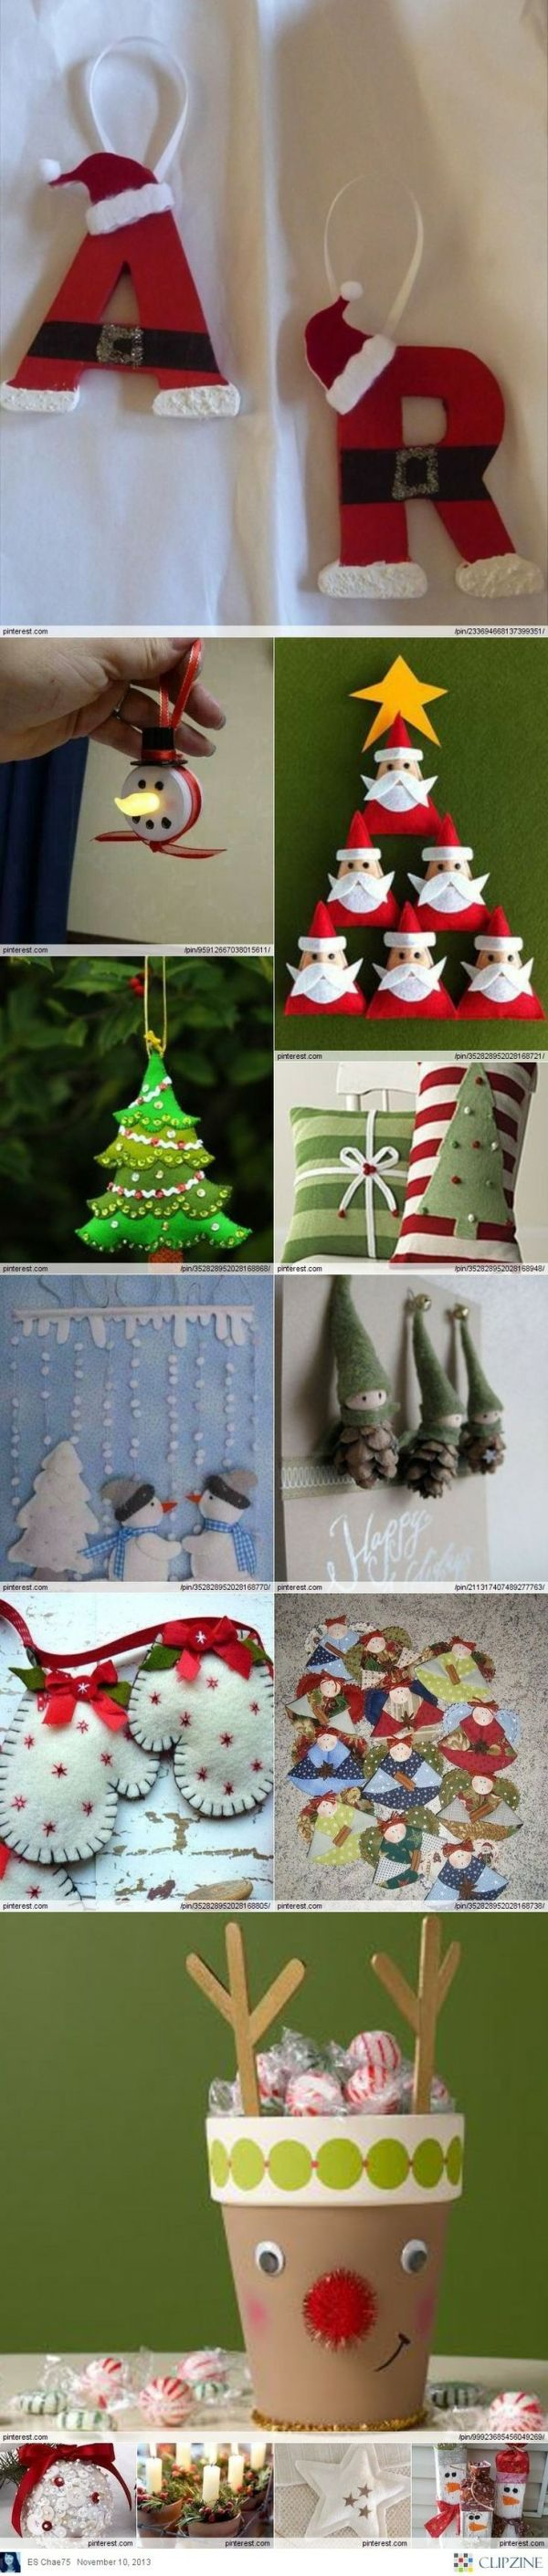 Christmas Crafts by Stoeps | Christmas | Pinterest | Craft, Xmas and ...